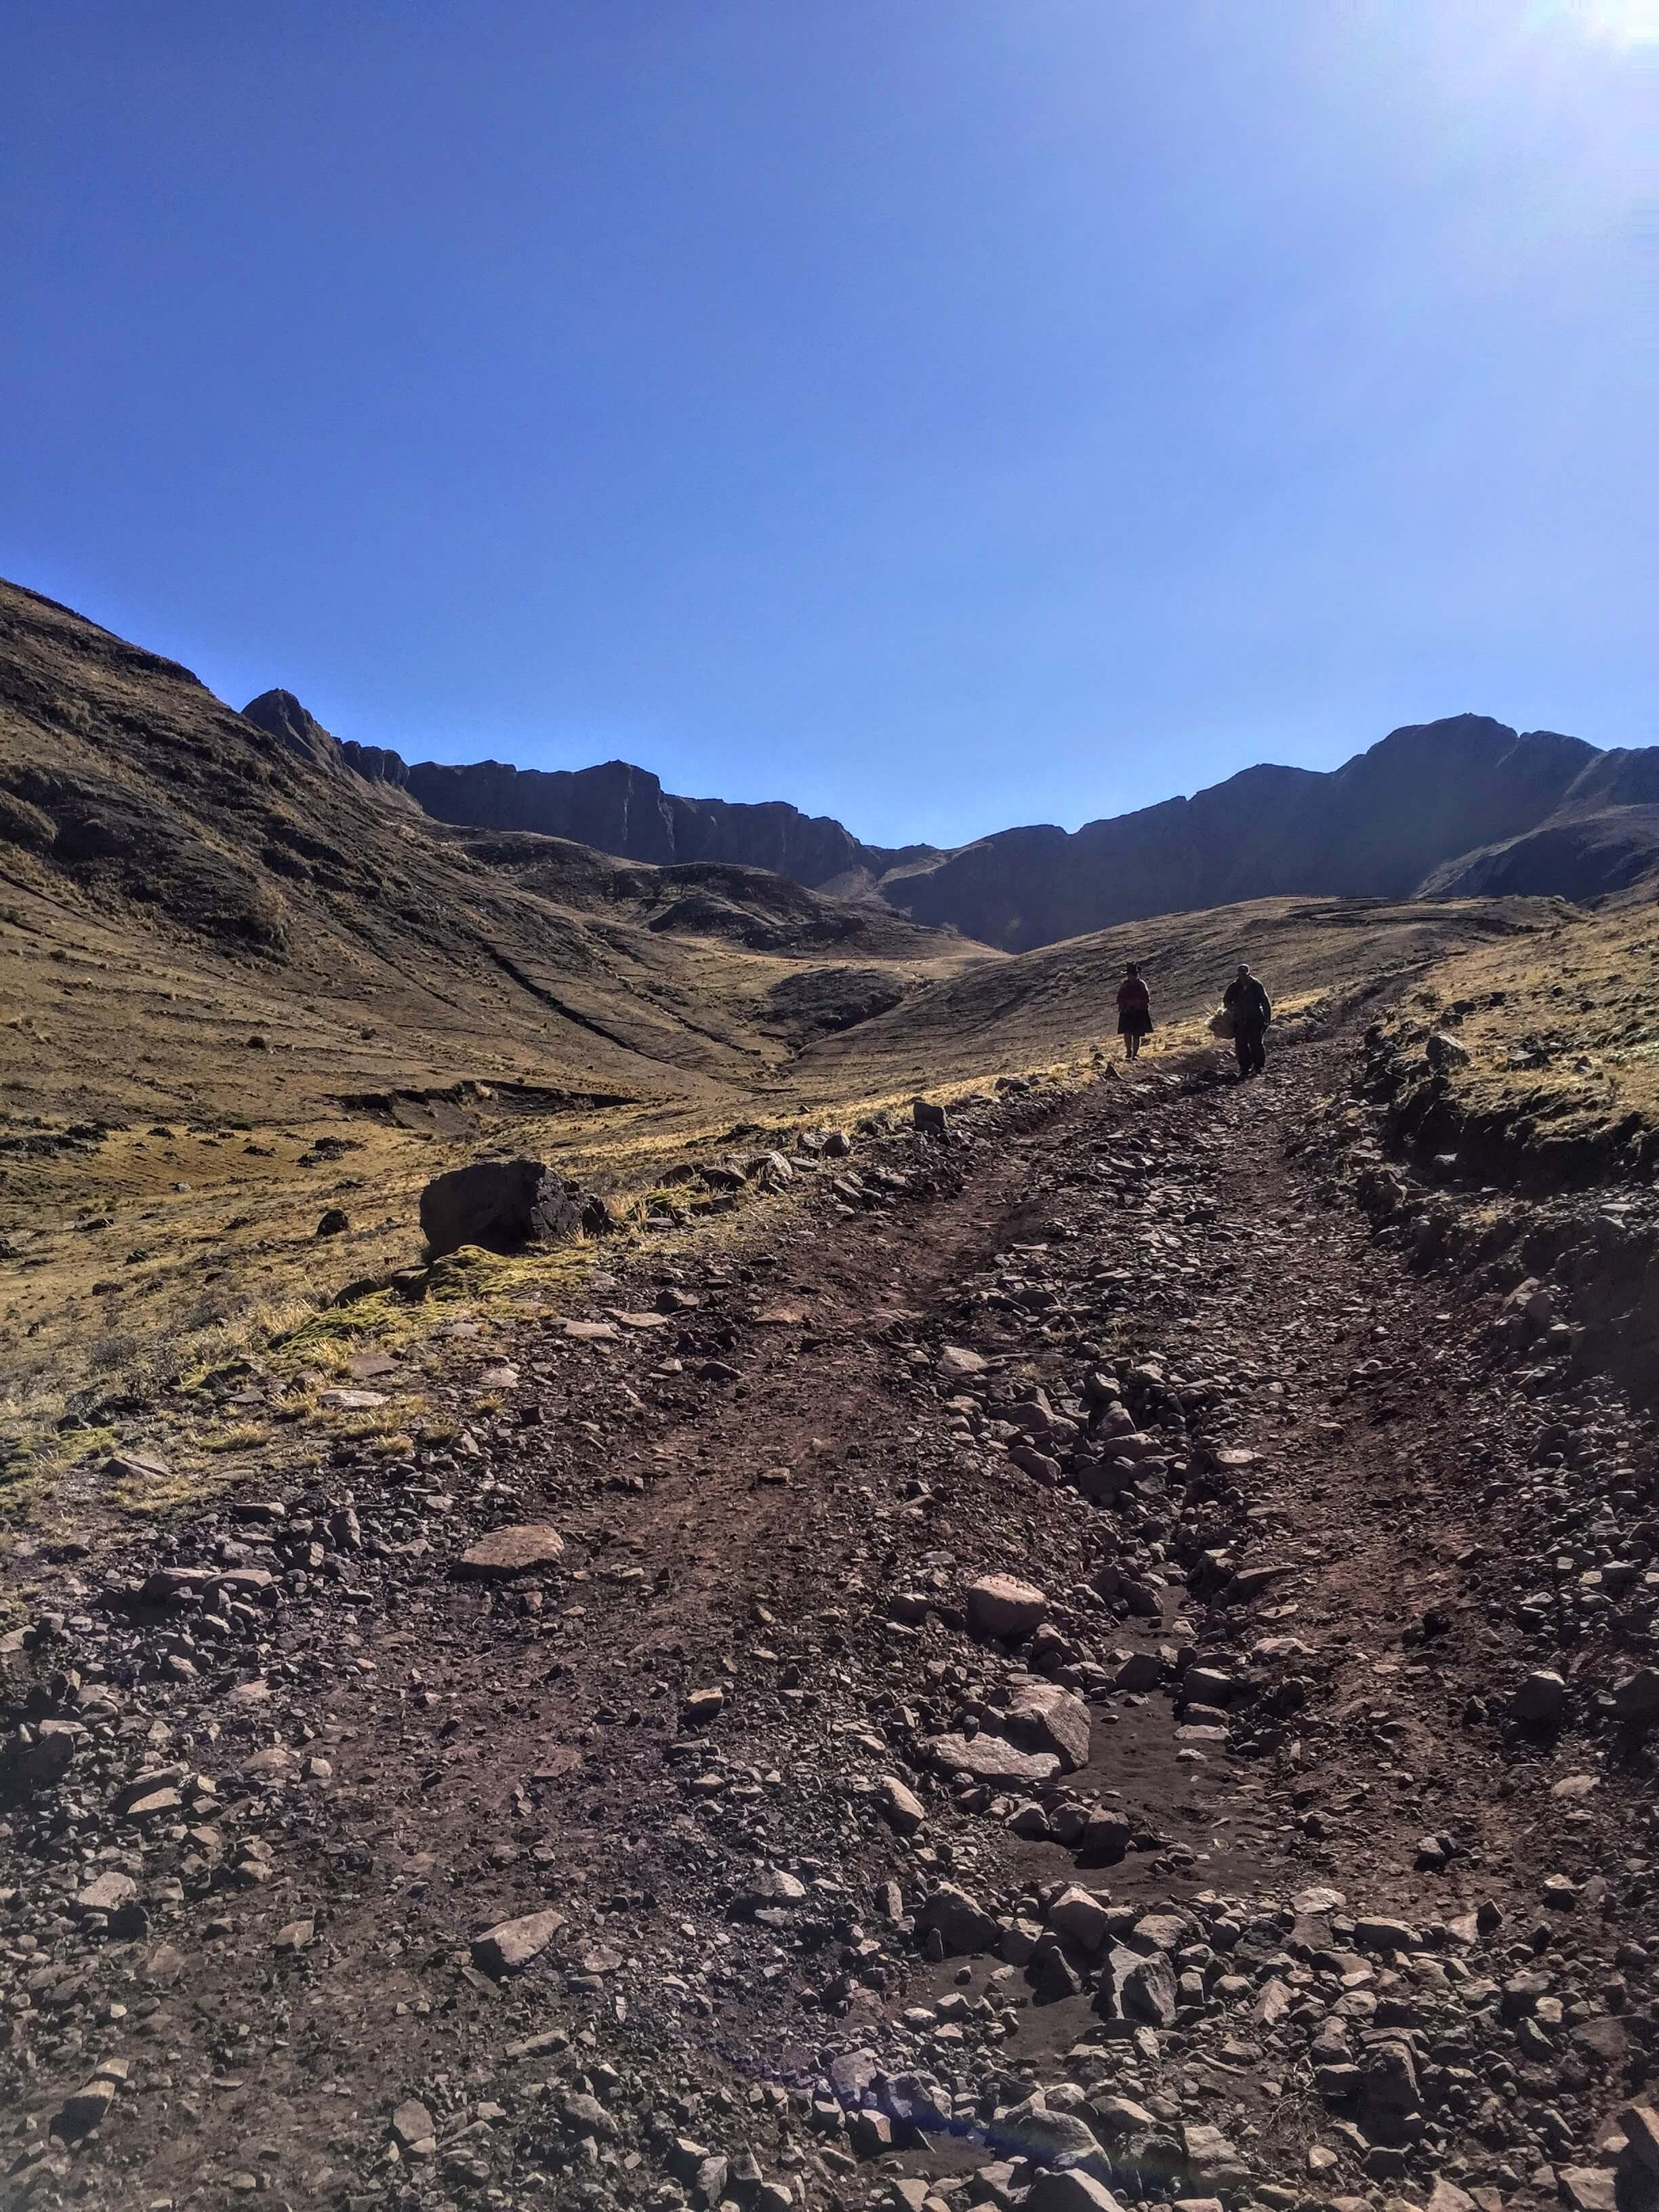 start of the Huchuy Qosqo trek